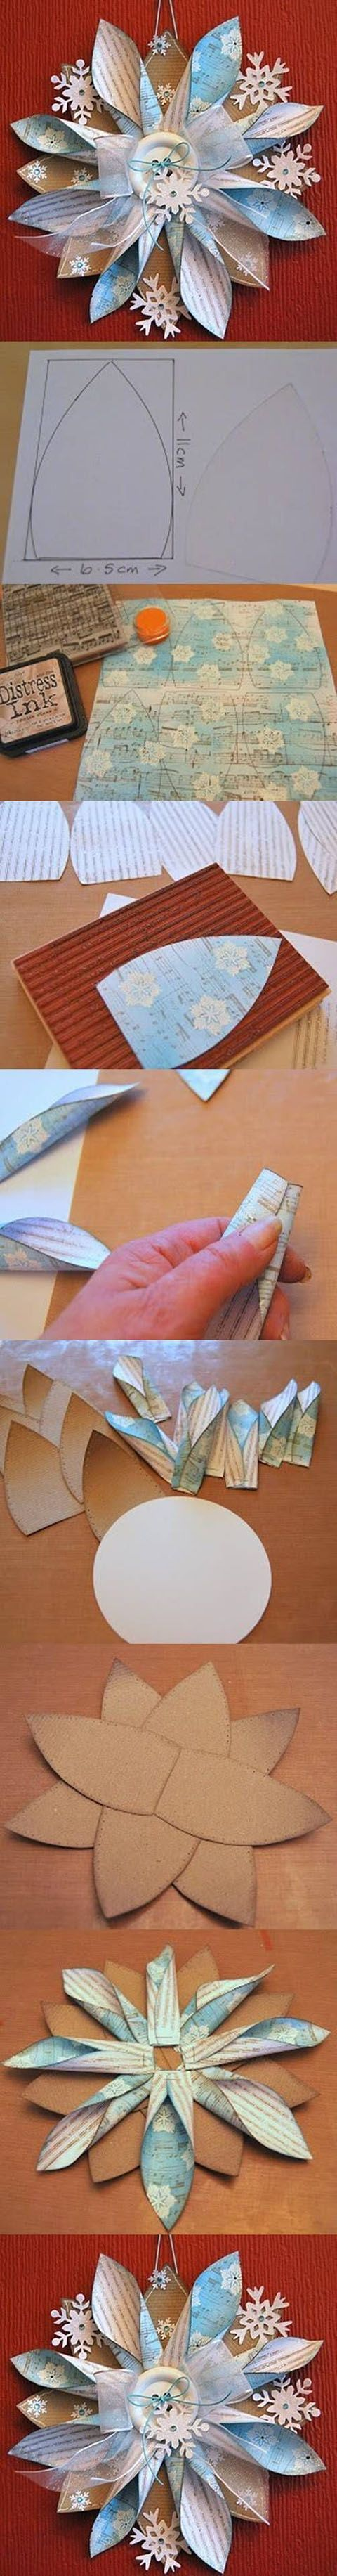 Beautiful Paper Decoration | DIY & Crafts (try diy fun)